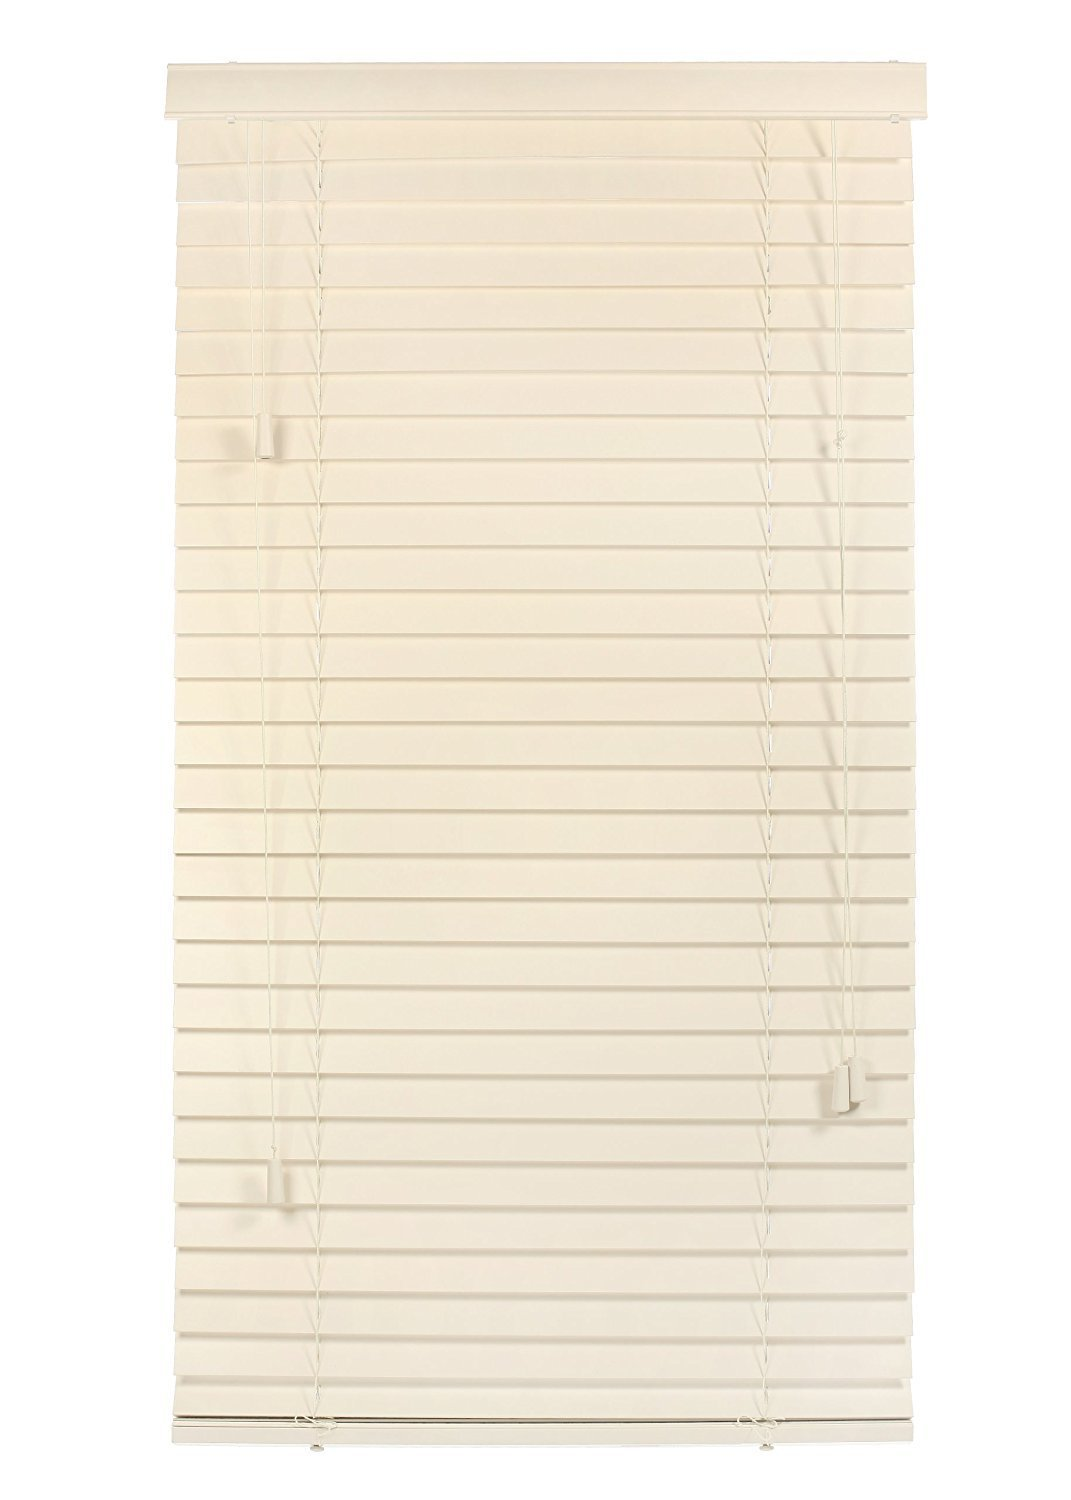 """Luxr Blinds Custom-Made 100% Real Wood 2"""" Slats Venetian Blinds: Easy-Mount Horizontal Window Treatment with Magnetic Valences - 46.5""""X64"""" Length Butter Cream (Off White)"""